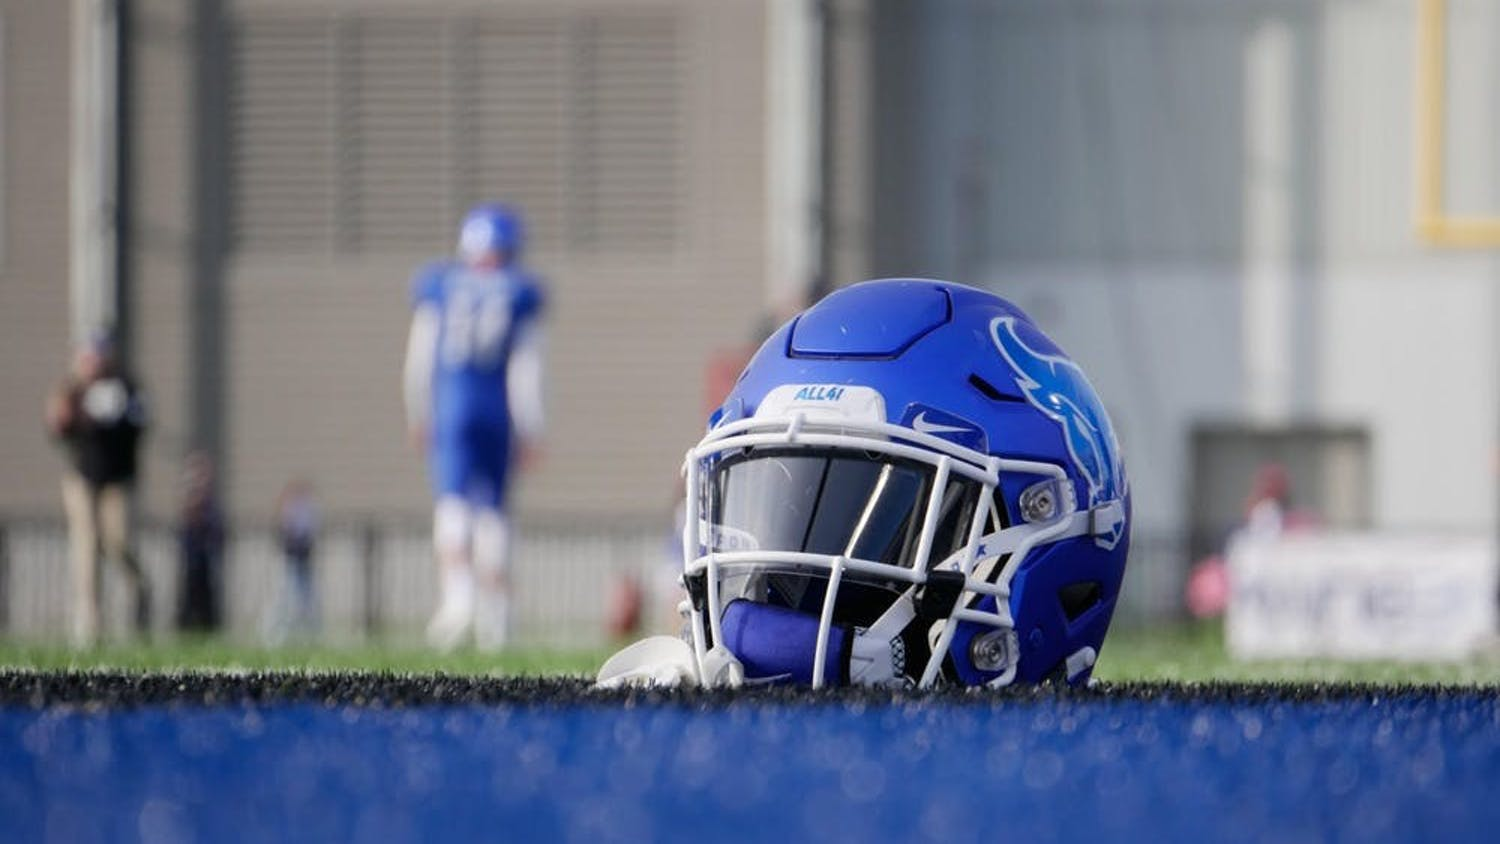 After Lance Leipold's departure for the University of Kansas last week, UB Athletic Director Mark Alnutt told reporters that he plans on hiring a new head coach before players head home after finals week on May 15.